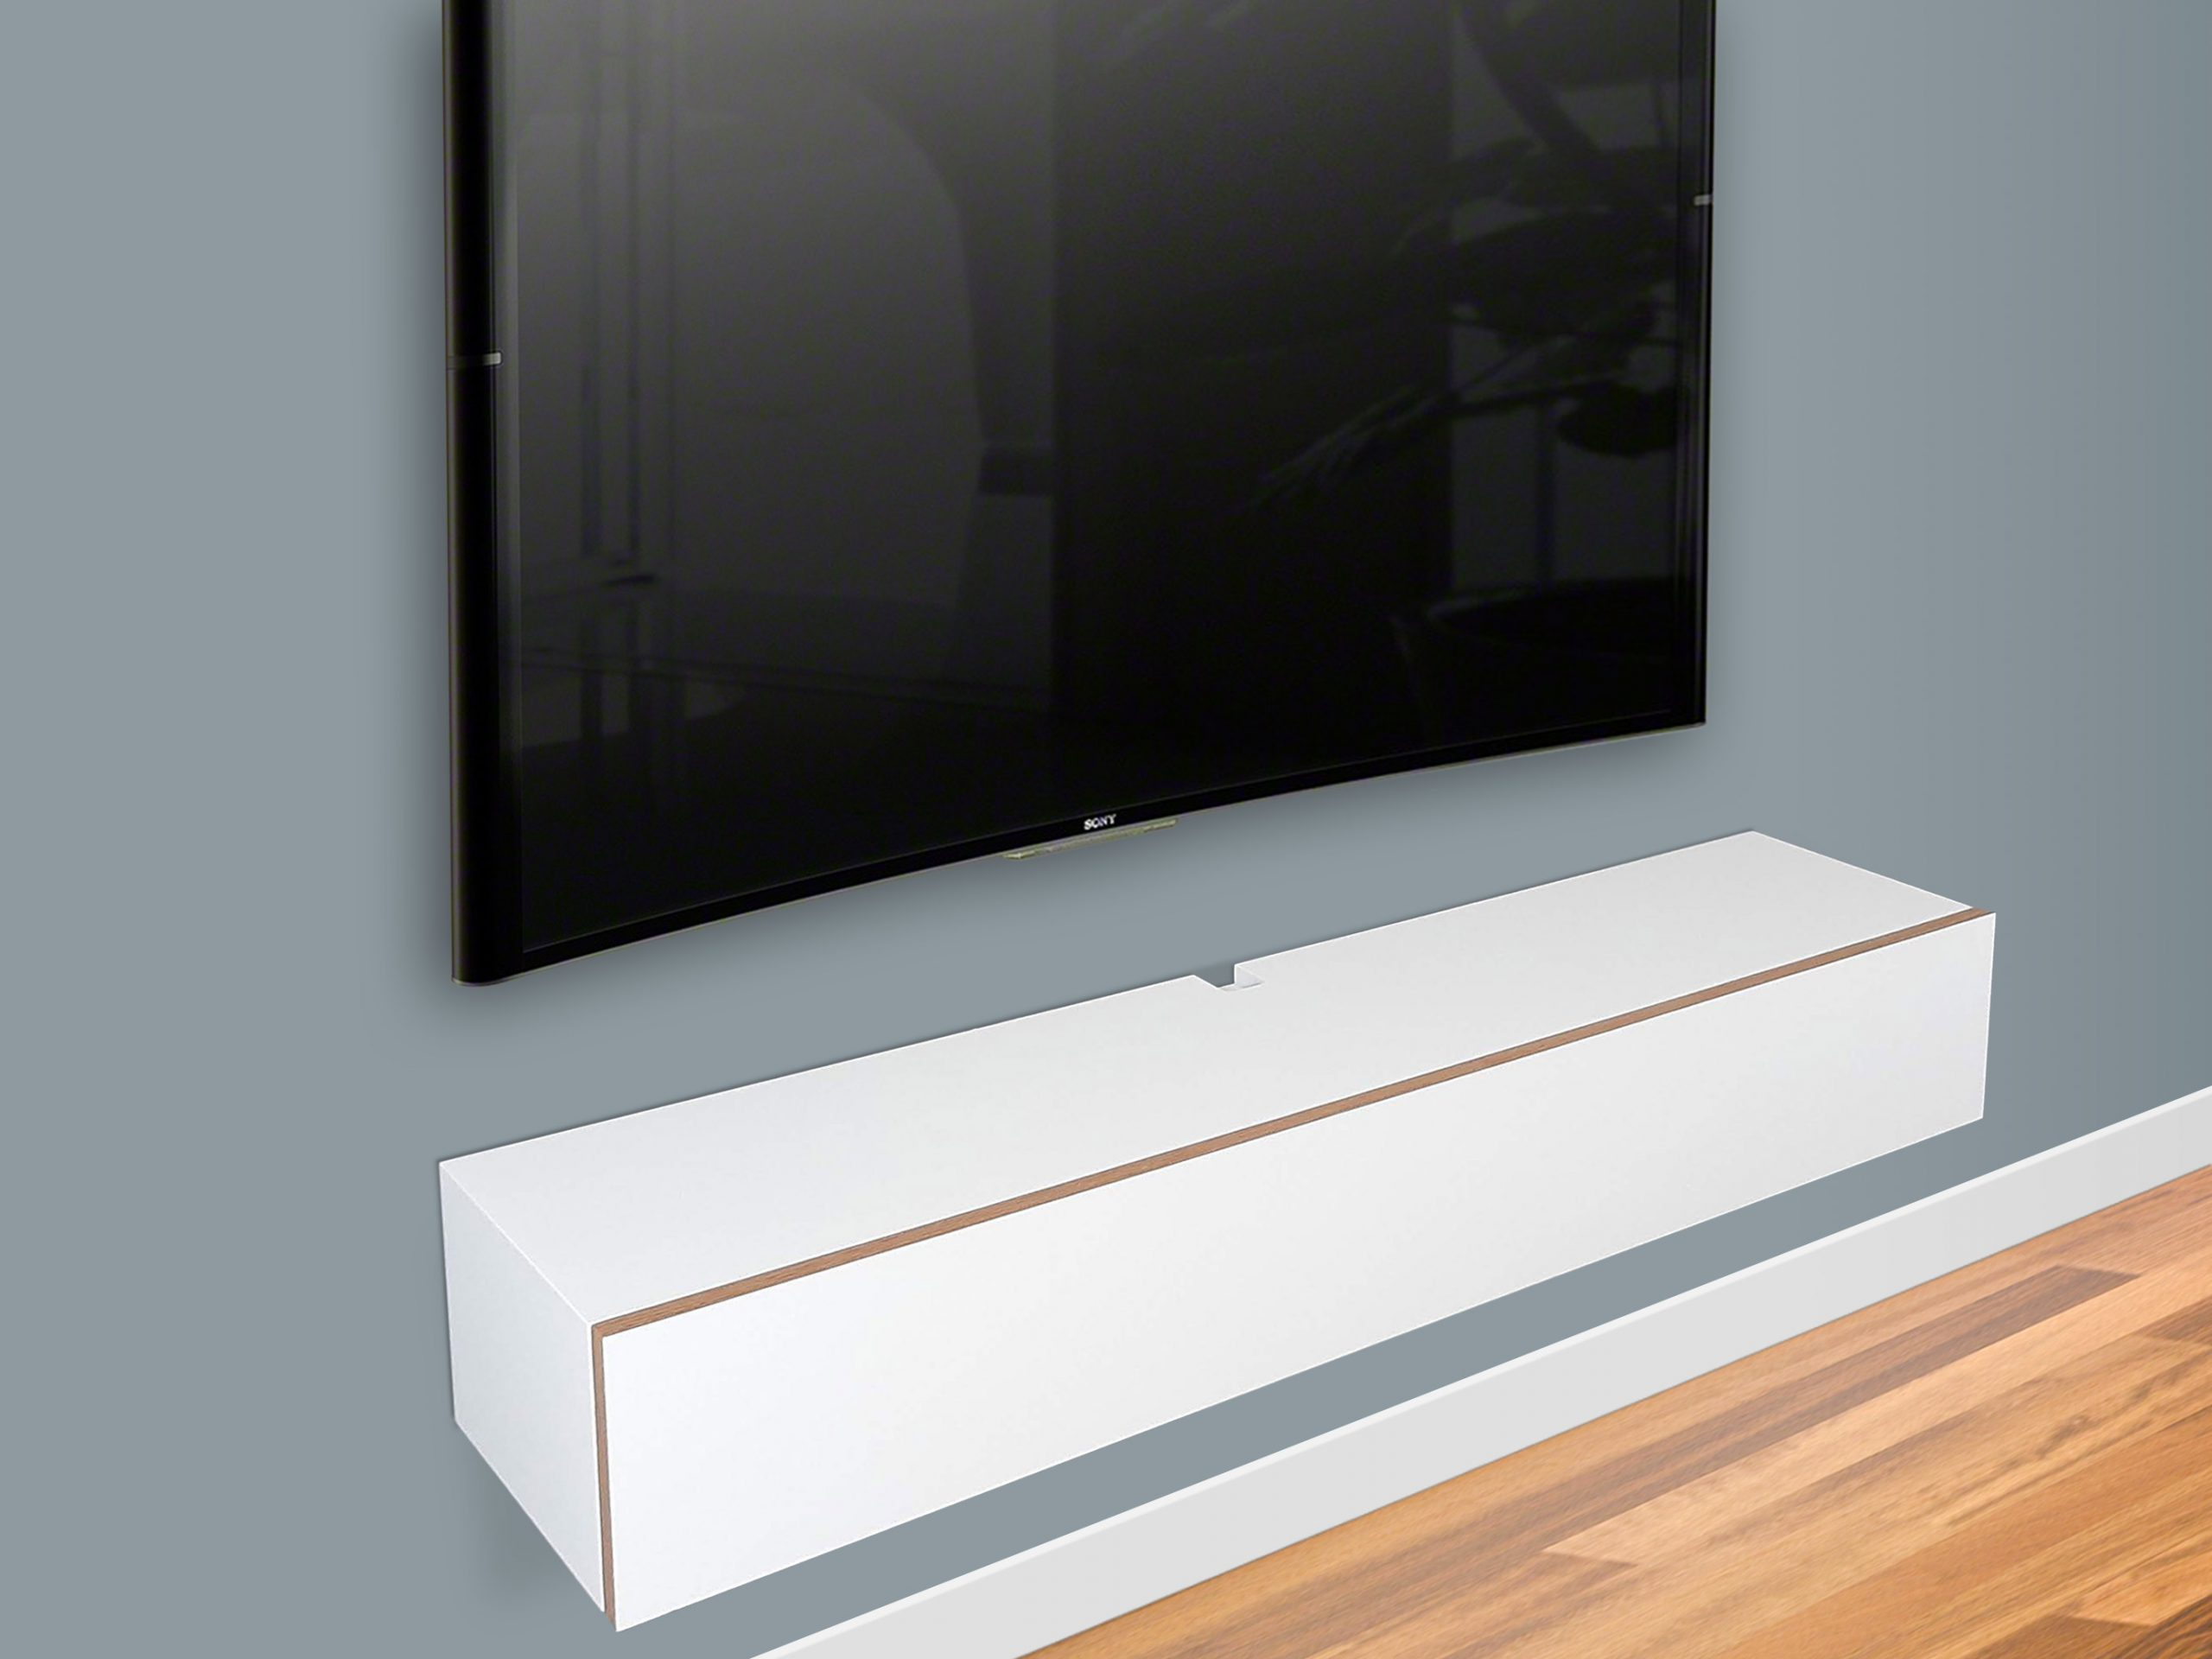 White Floating Tv Stand Wall Mount Media Console Spark Shell Craft